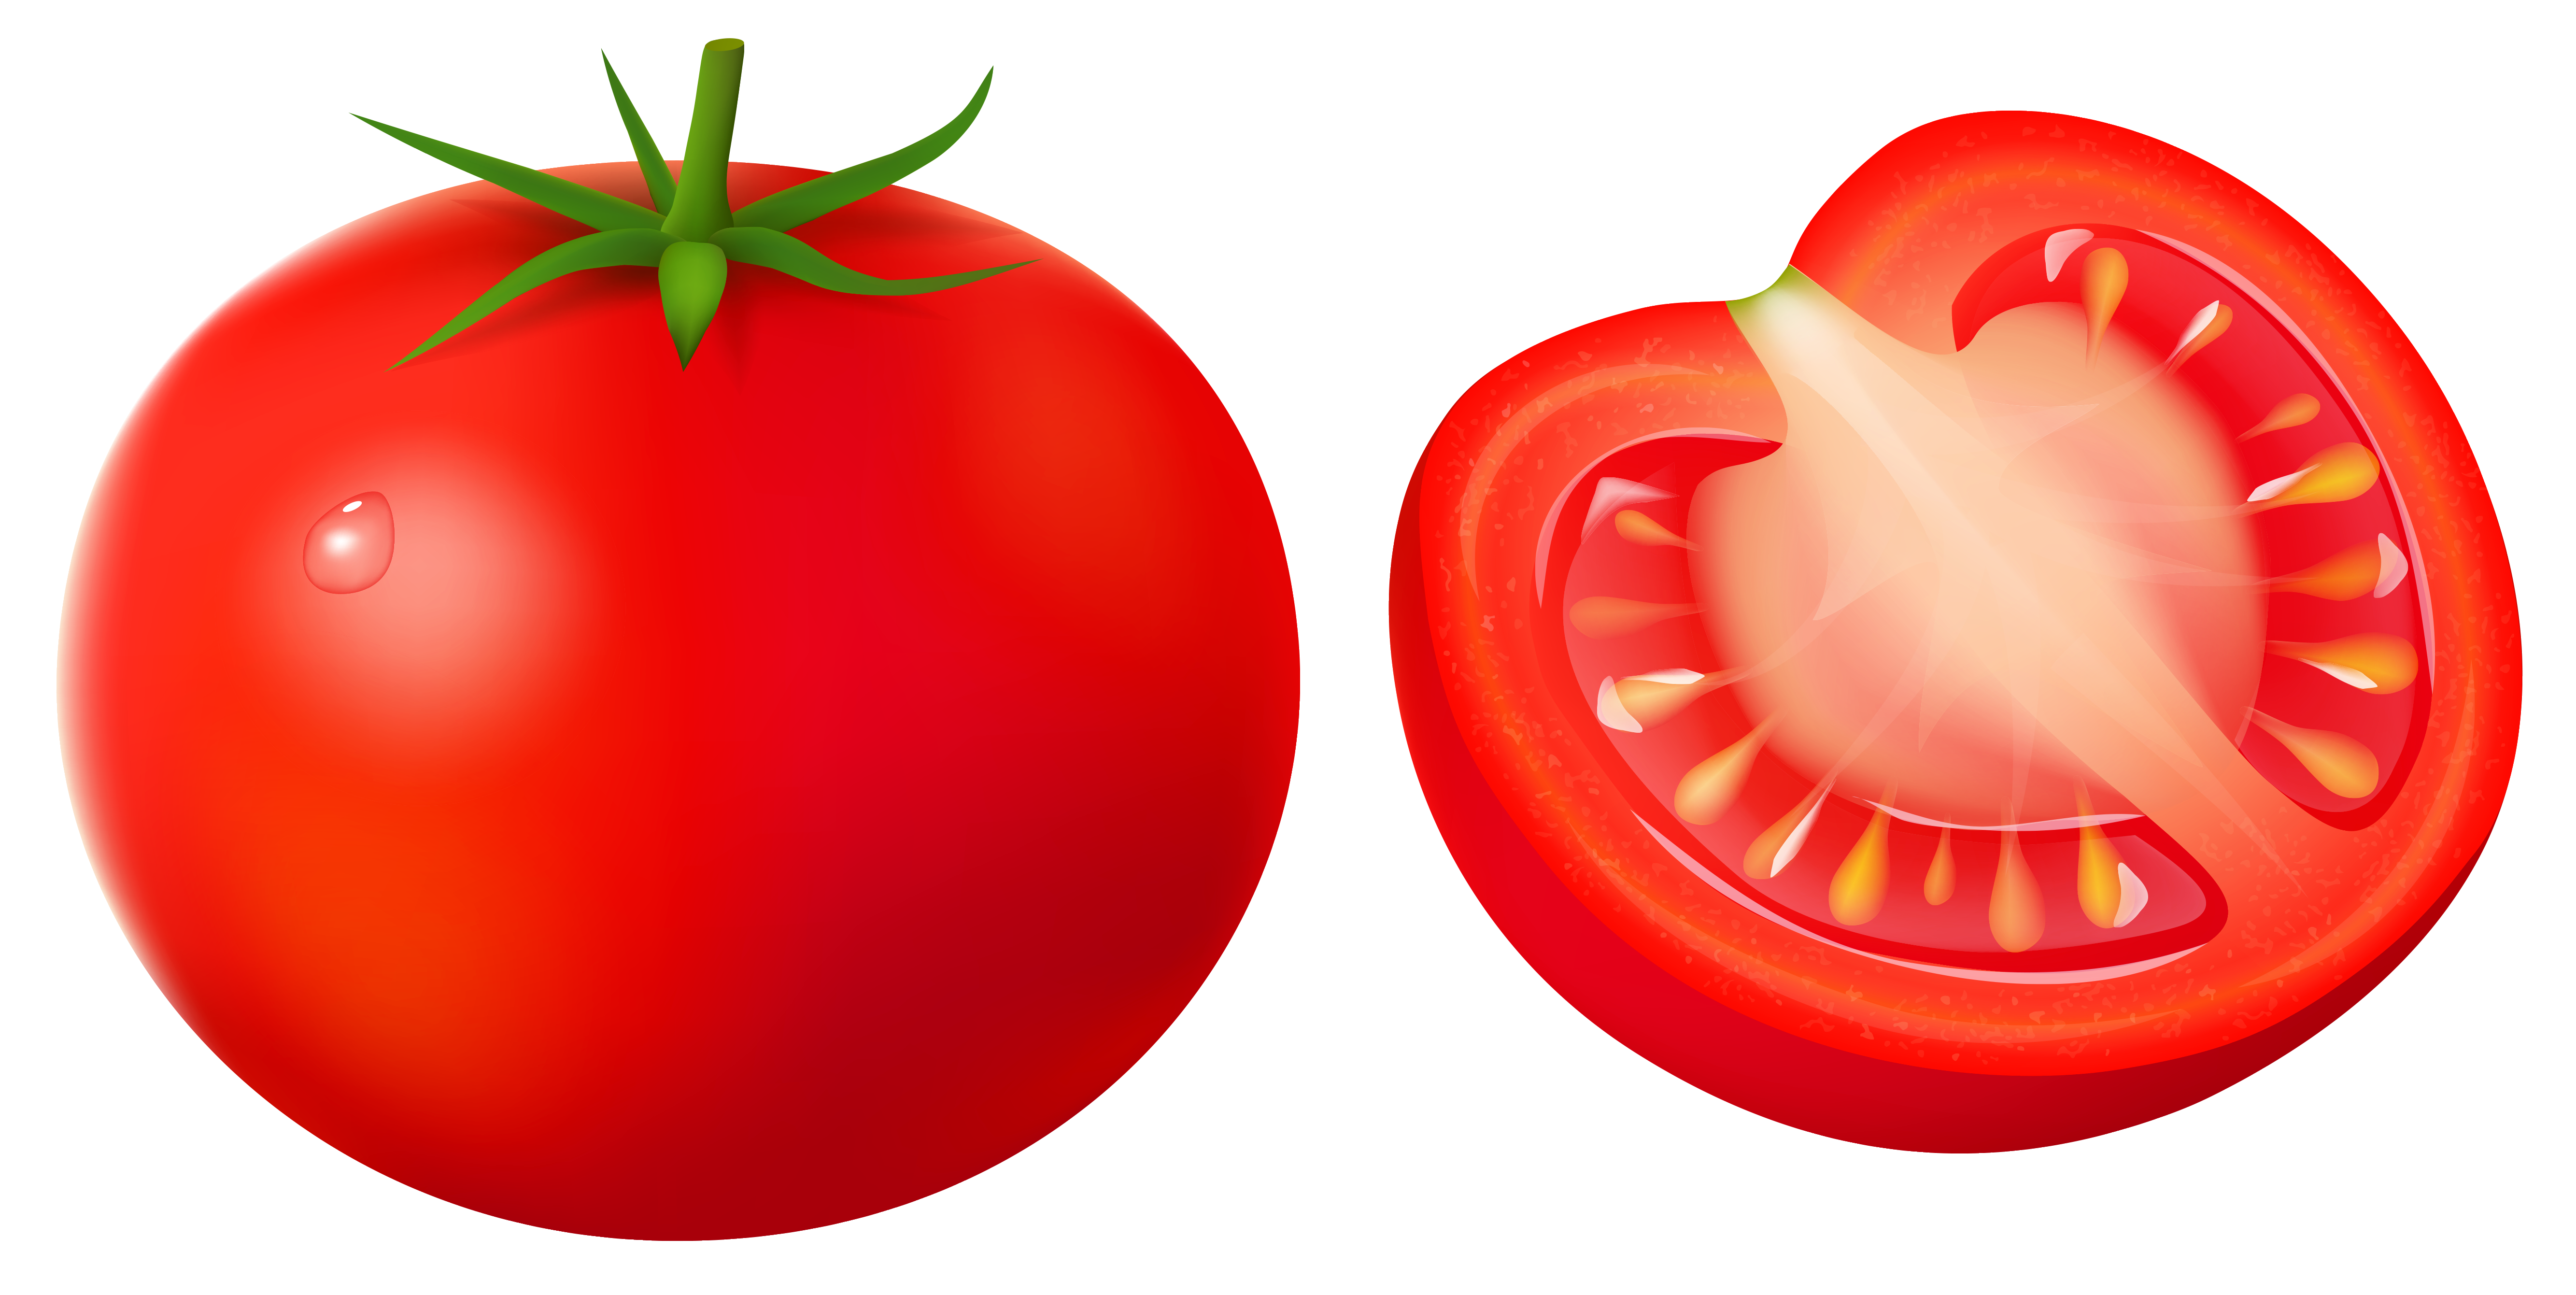 Tomatoes clipart happy tomato. Free background cliparts download